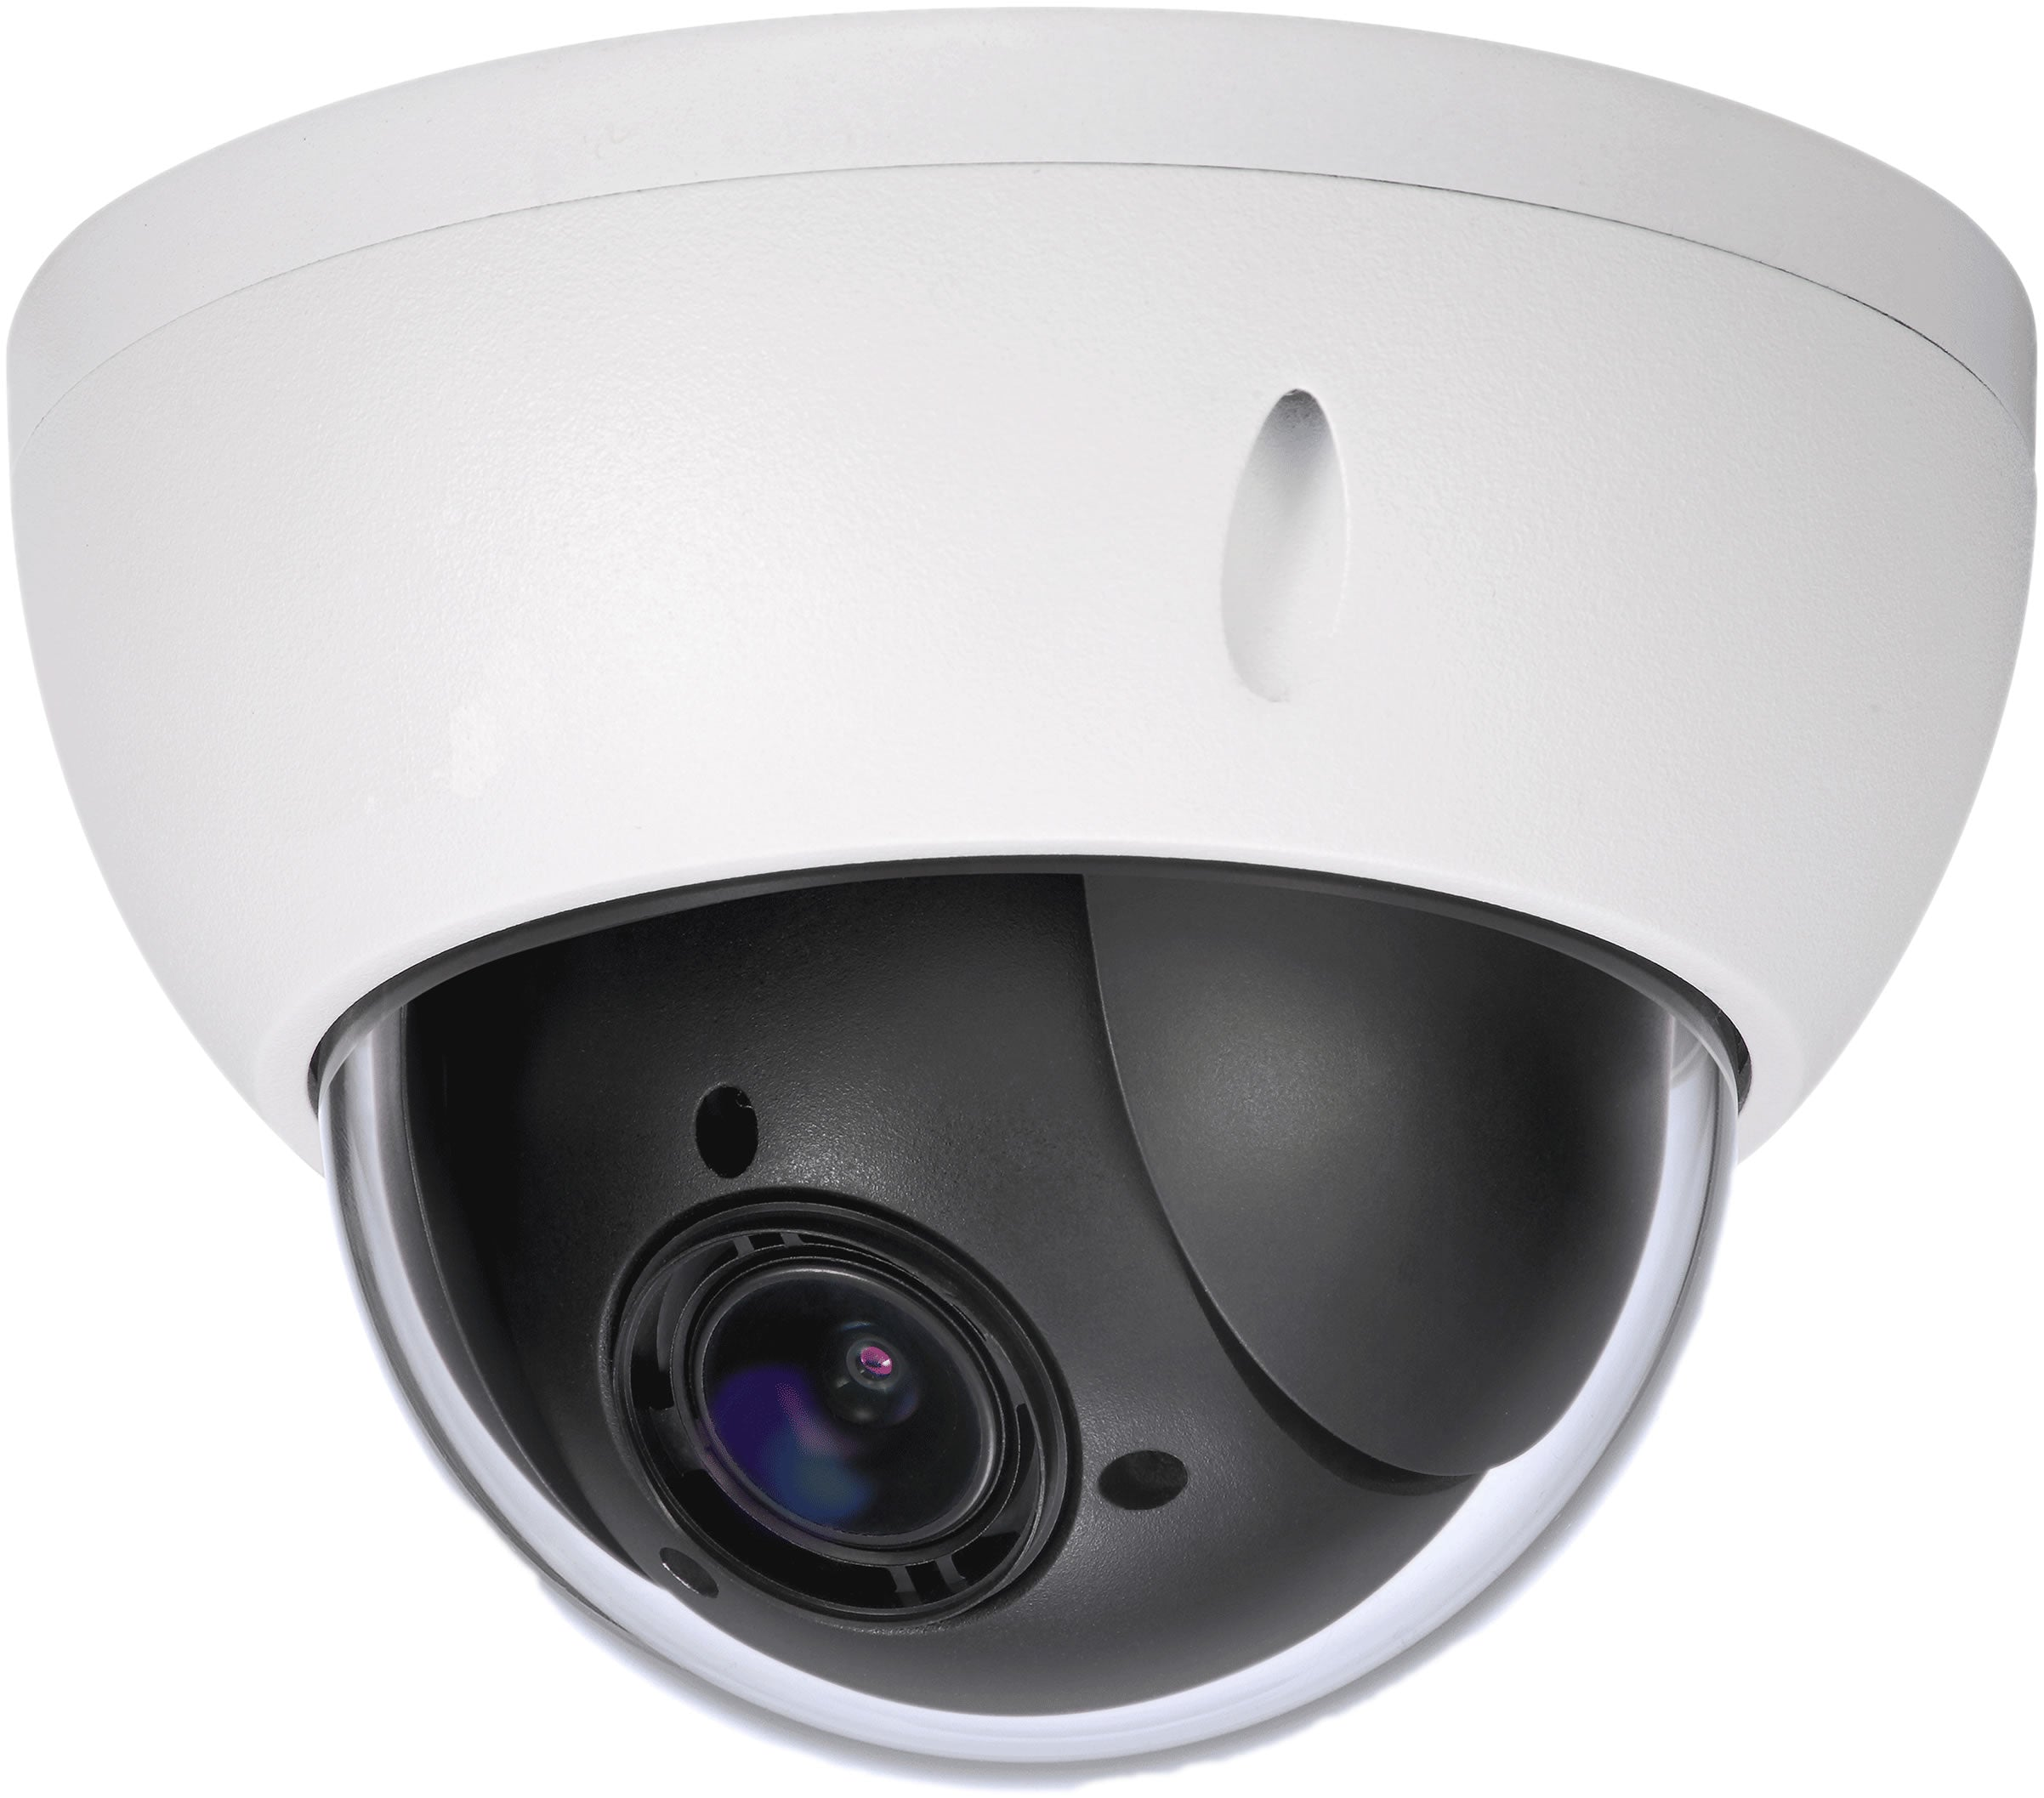 23-4SD22A204U-N 2MP 4x Starlight Mini PTZ Network Camera